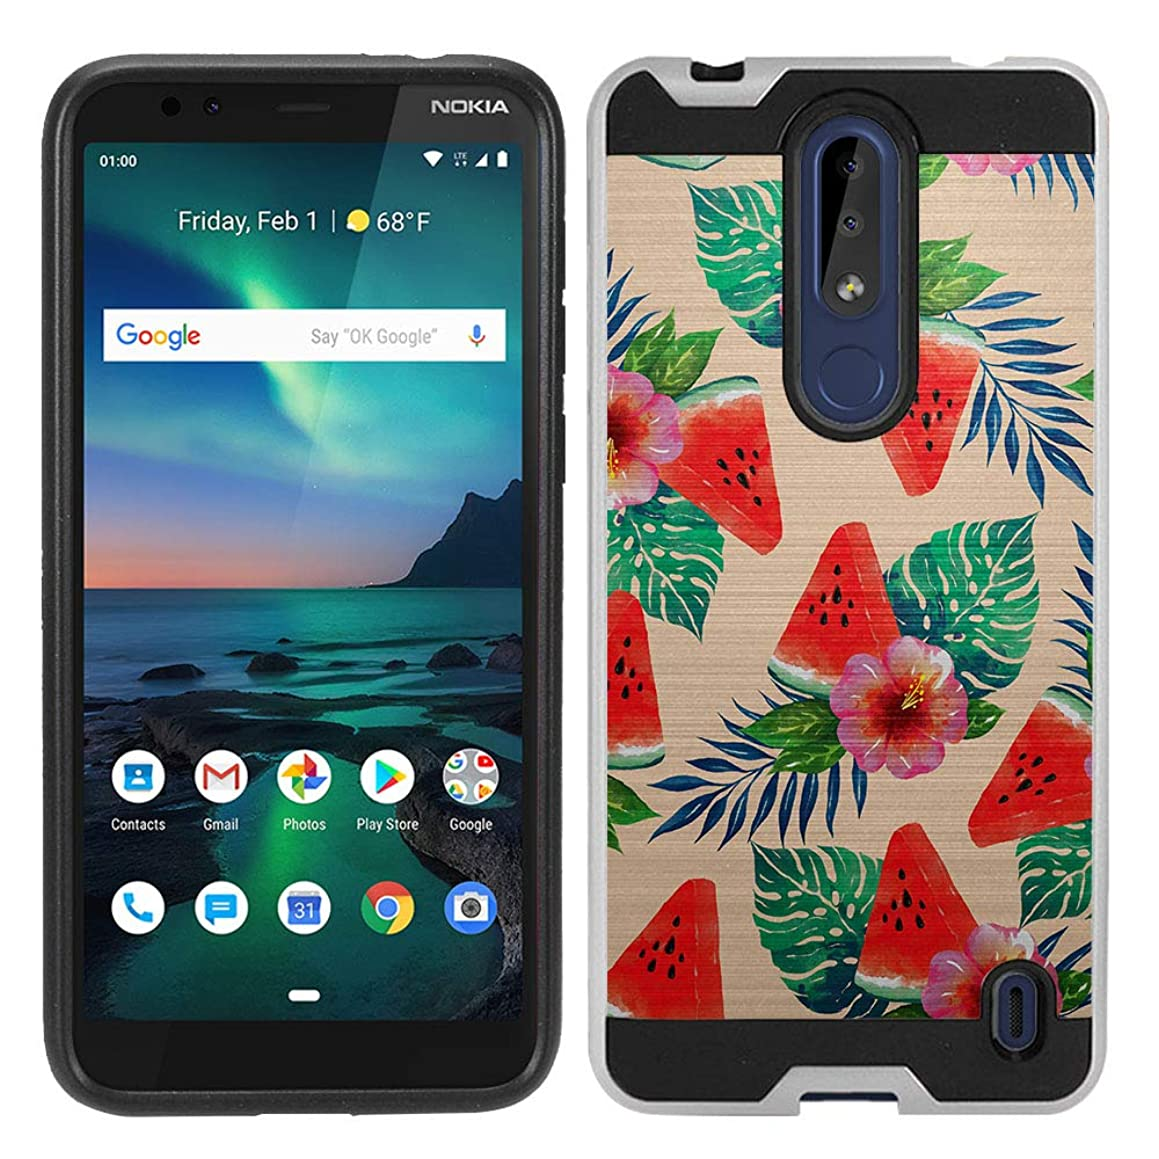 FINCIBO Case Compatible with Nokia 3.1 Plus Cricket, Brushed Hybrid Hard Protector Case Cover TPU for Nokia 3.1 Plus Cricket (NOT FIT International) - Watermelon Tropical Plants Orange Pastel